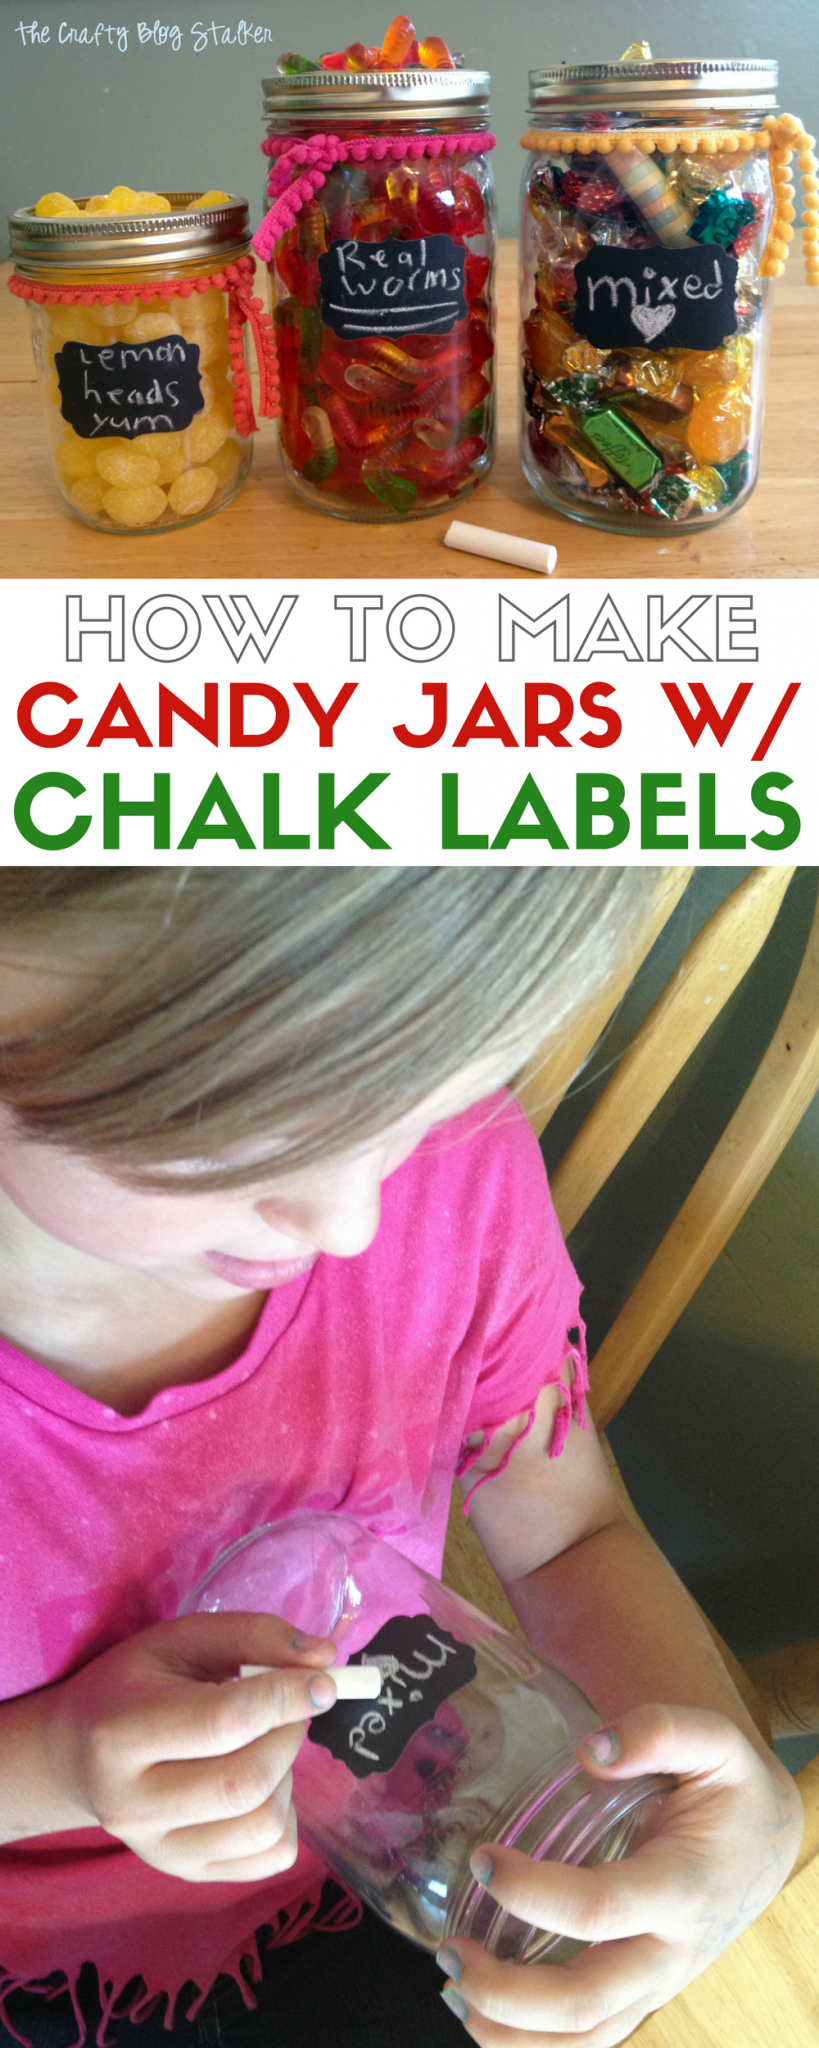 Turn a glass Mason Jar into a candy jar with a Chalkboard label. A simple DIY craft tutorial idea perfect for parties and table centerpieces.